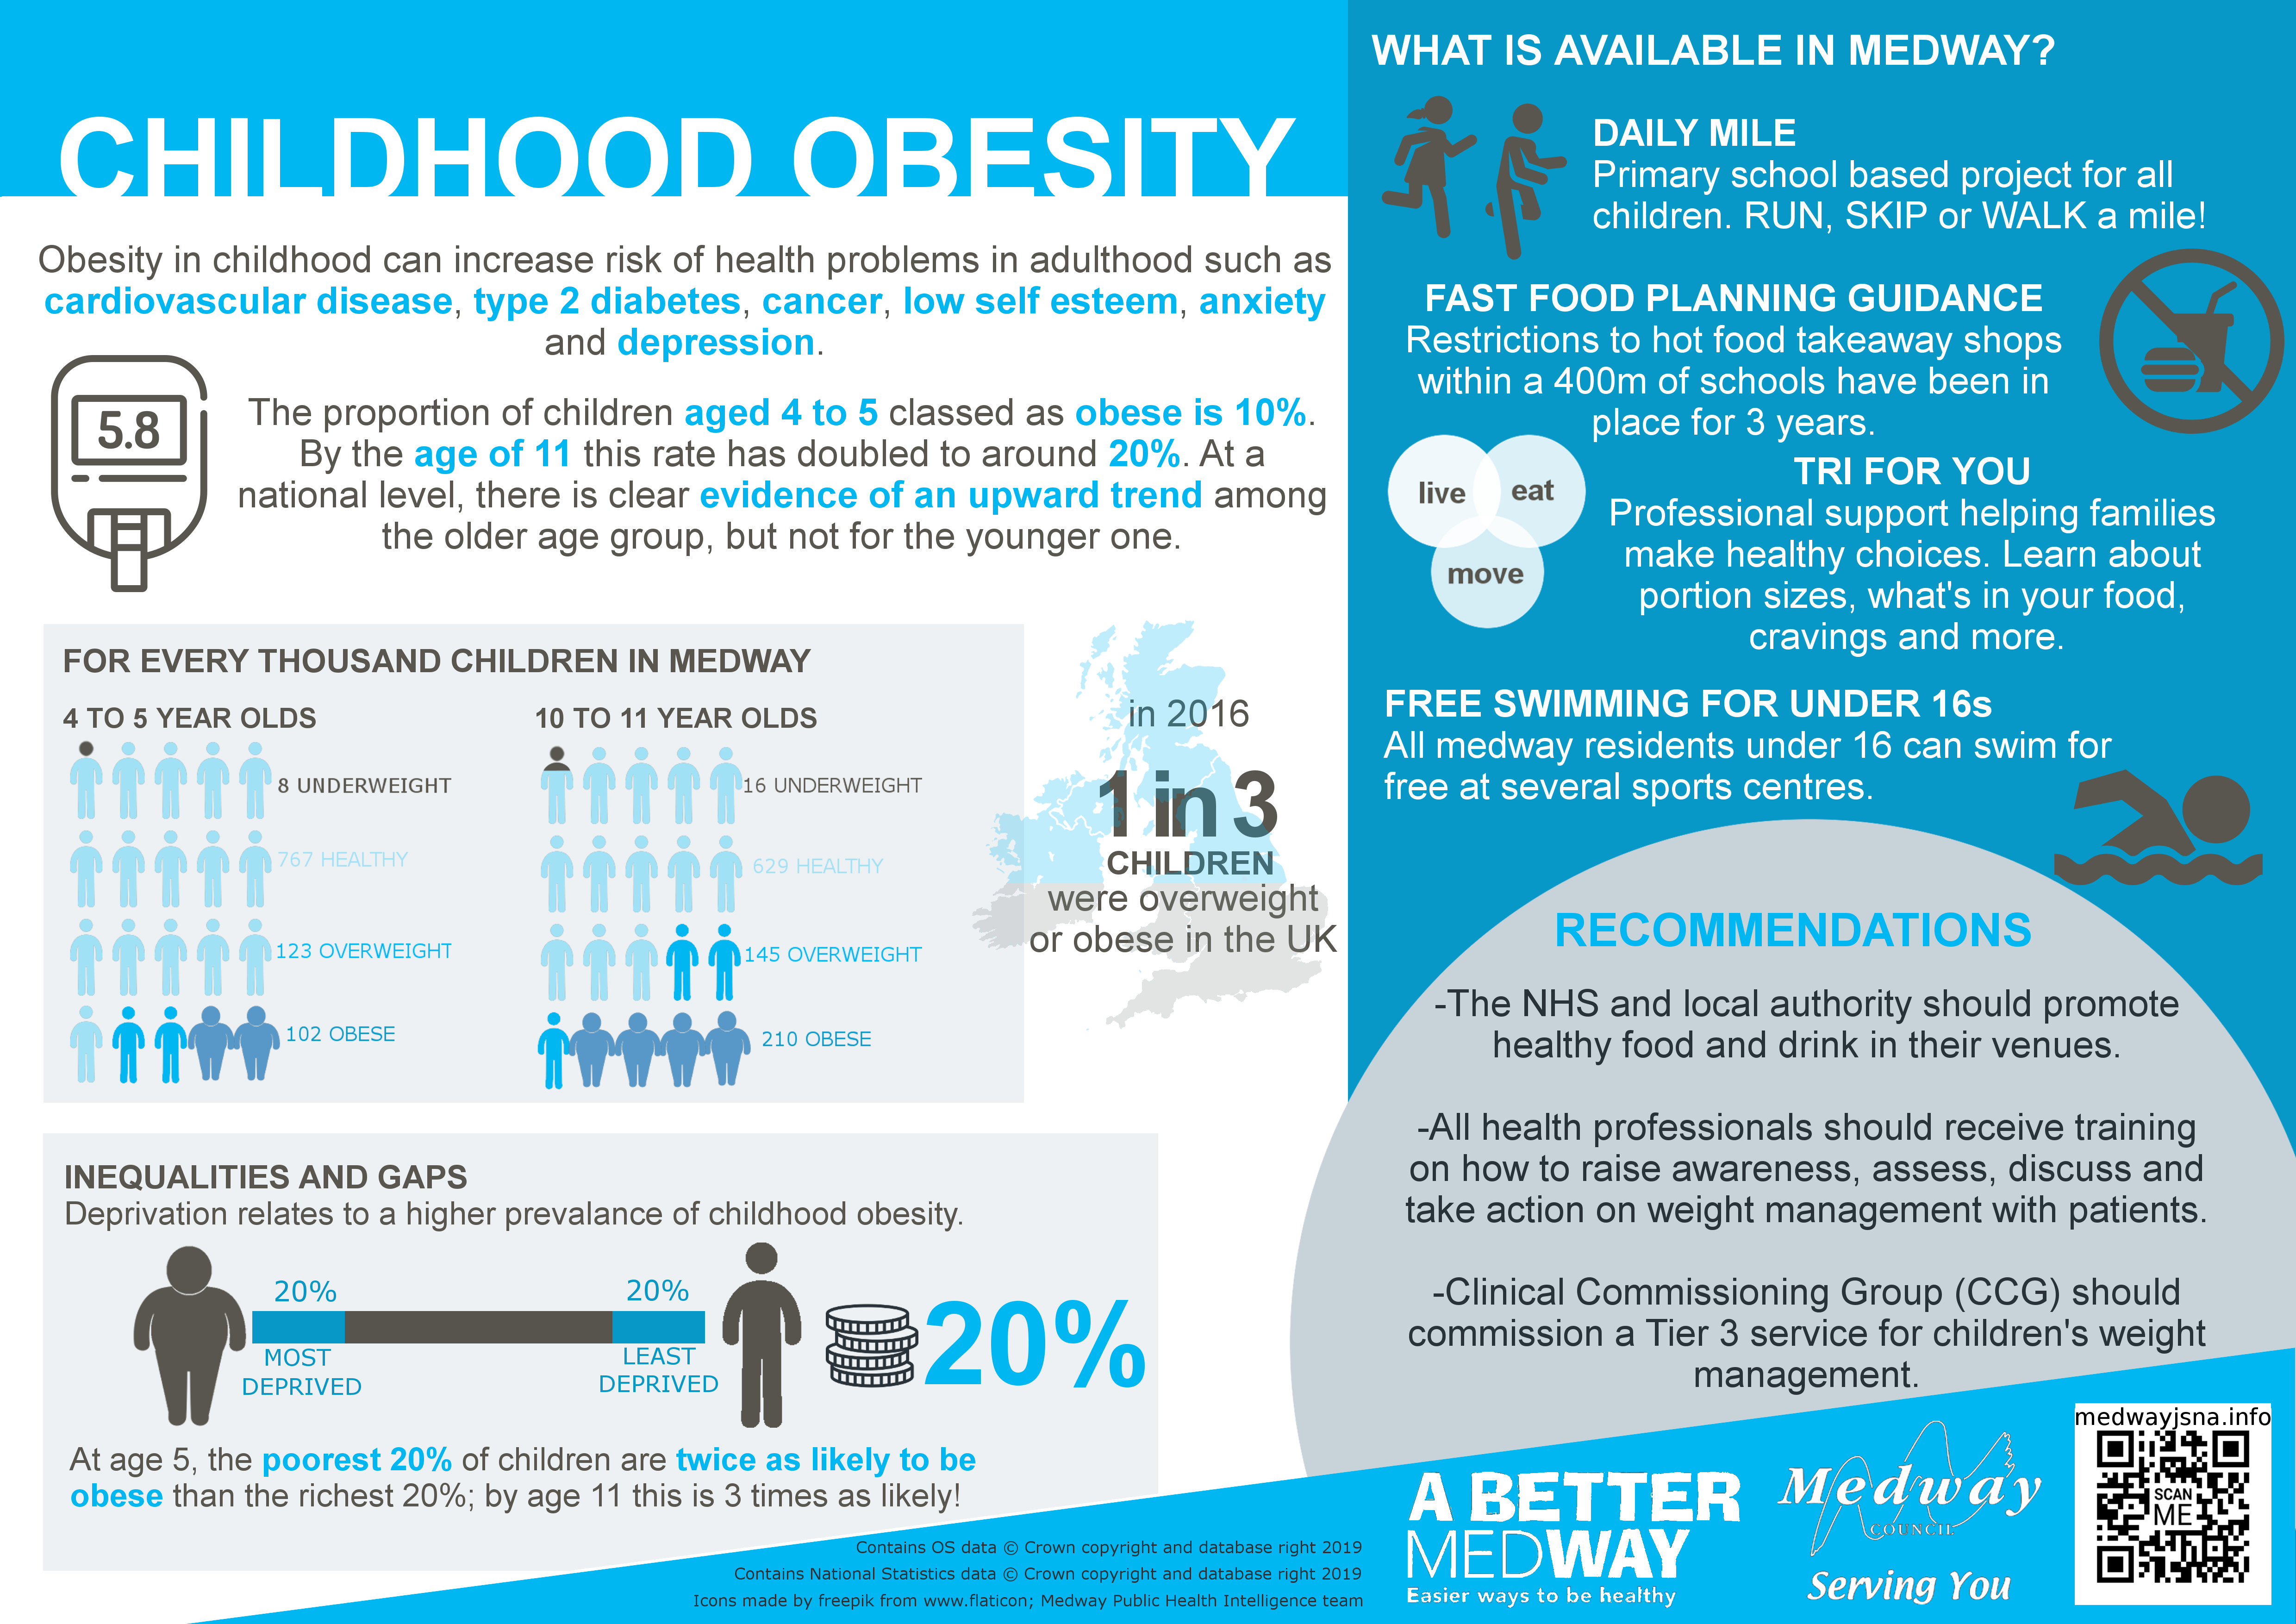 Medway childhood obesity infographic